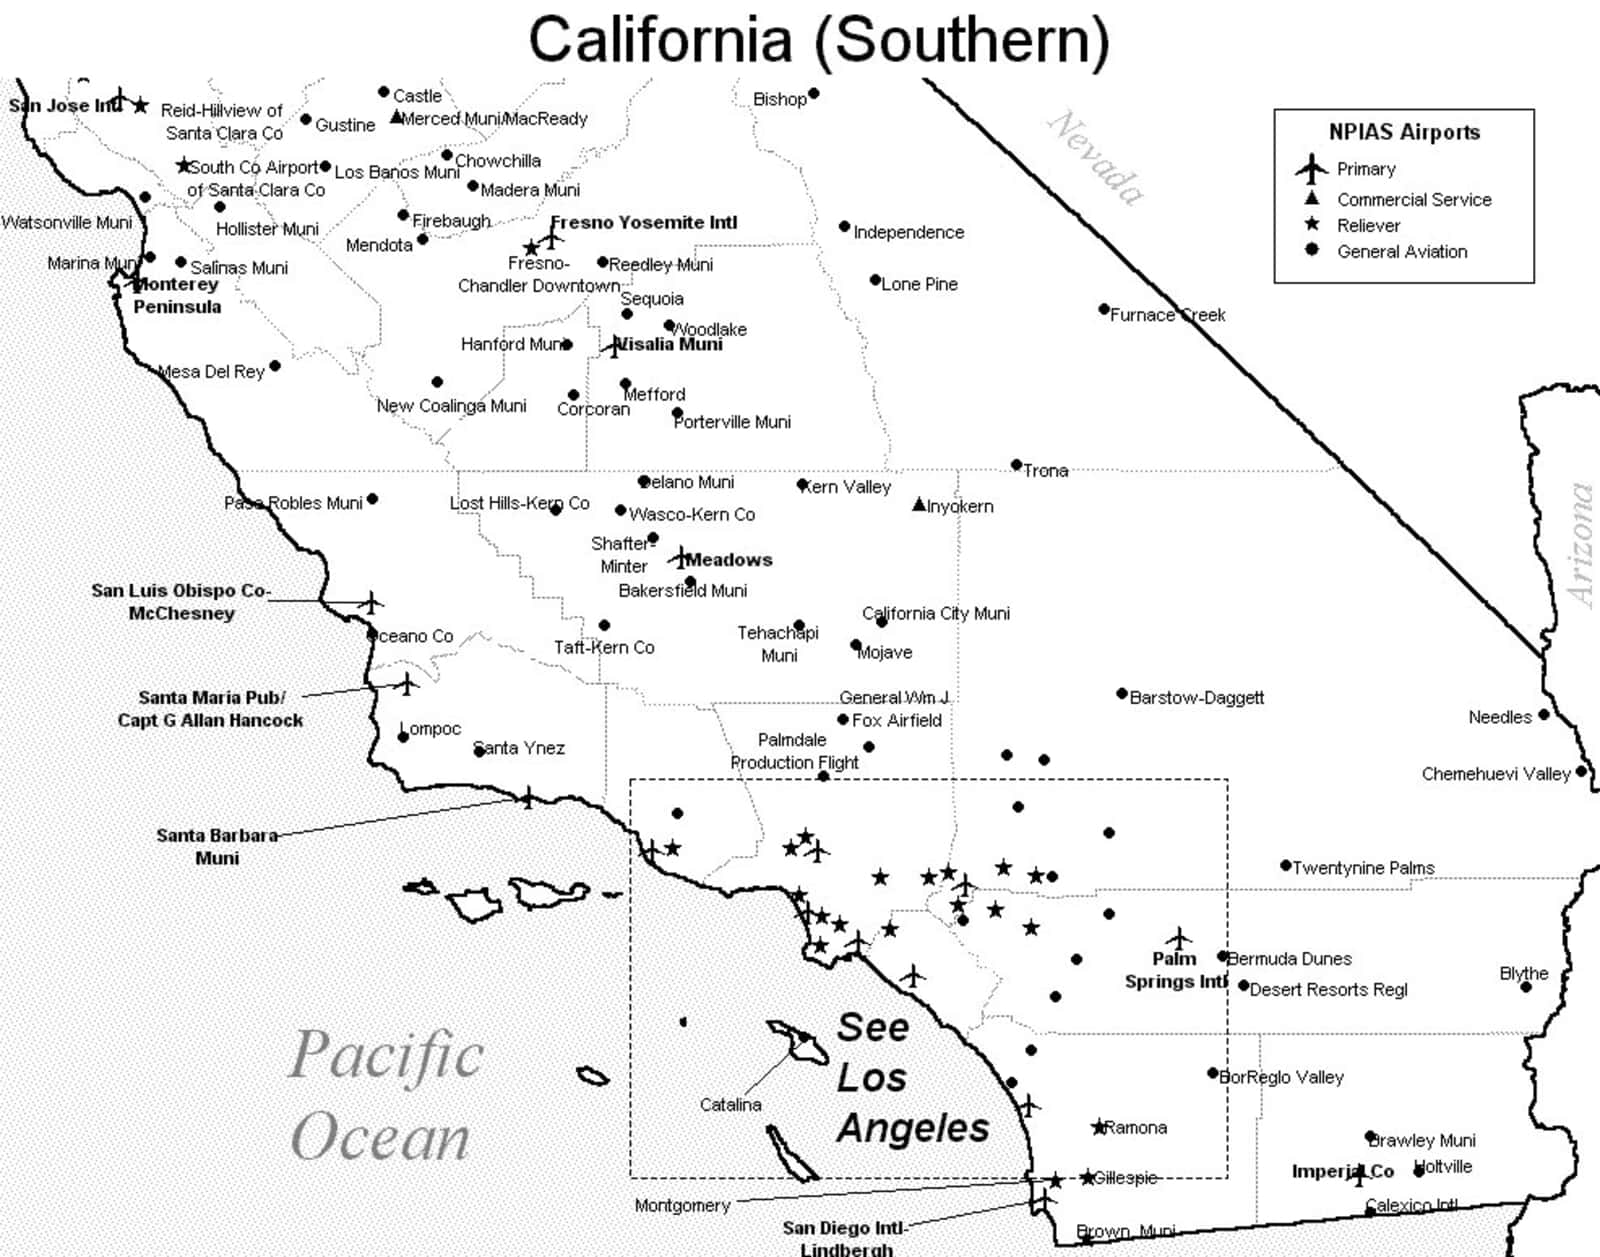 Southern California Airport Map - Southern California Airports